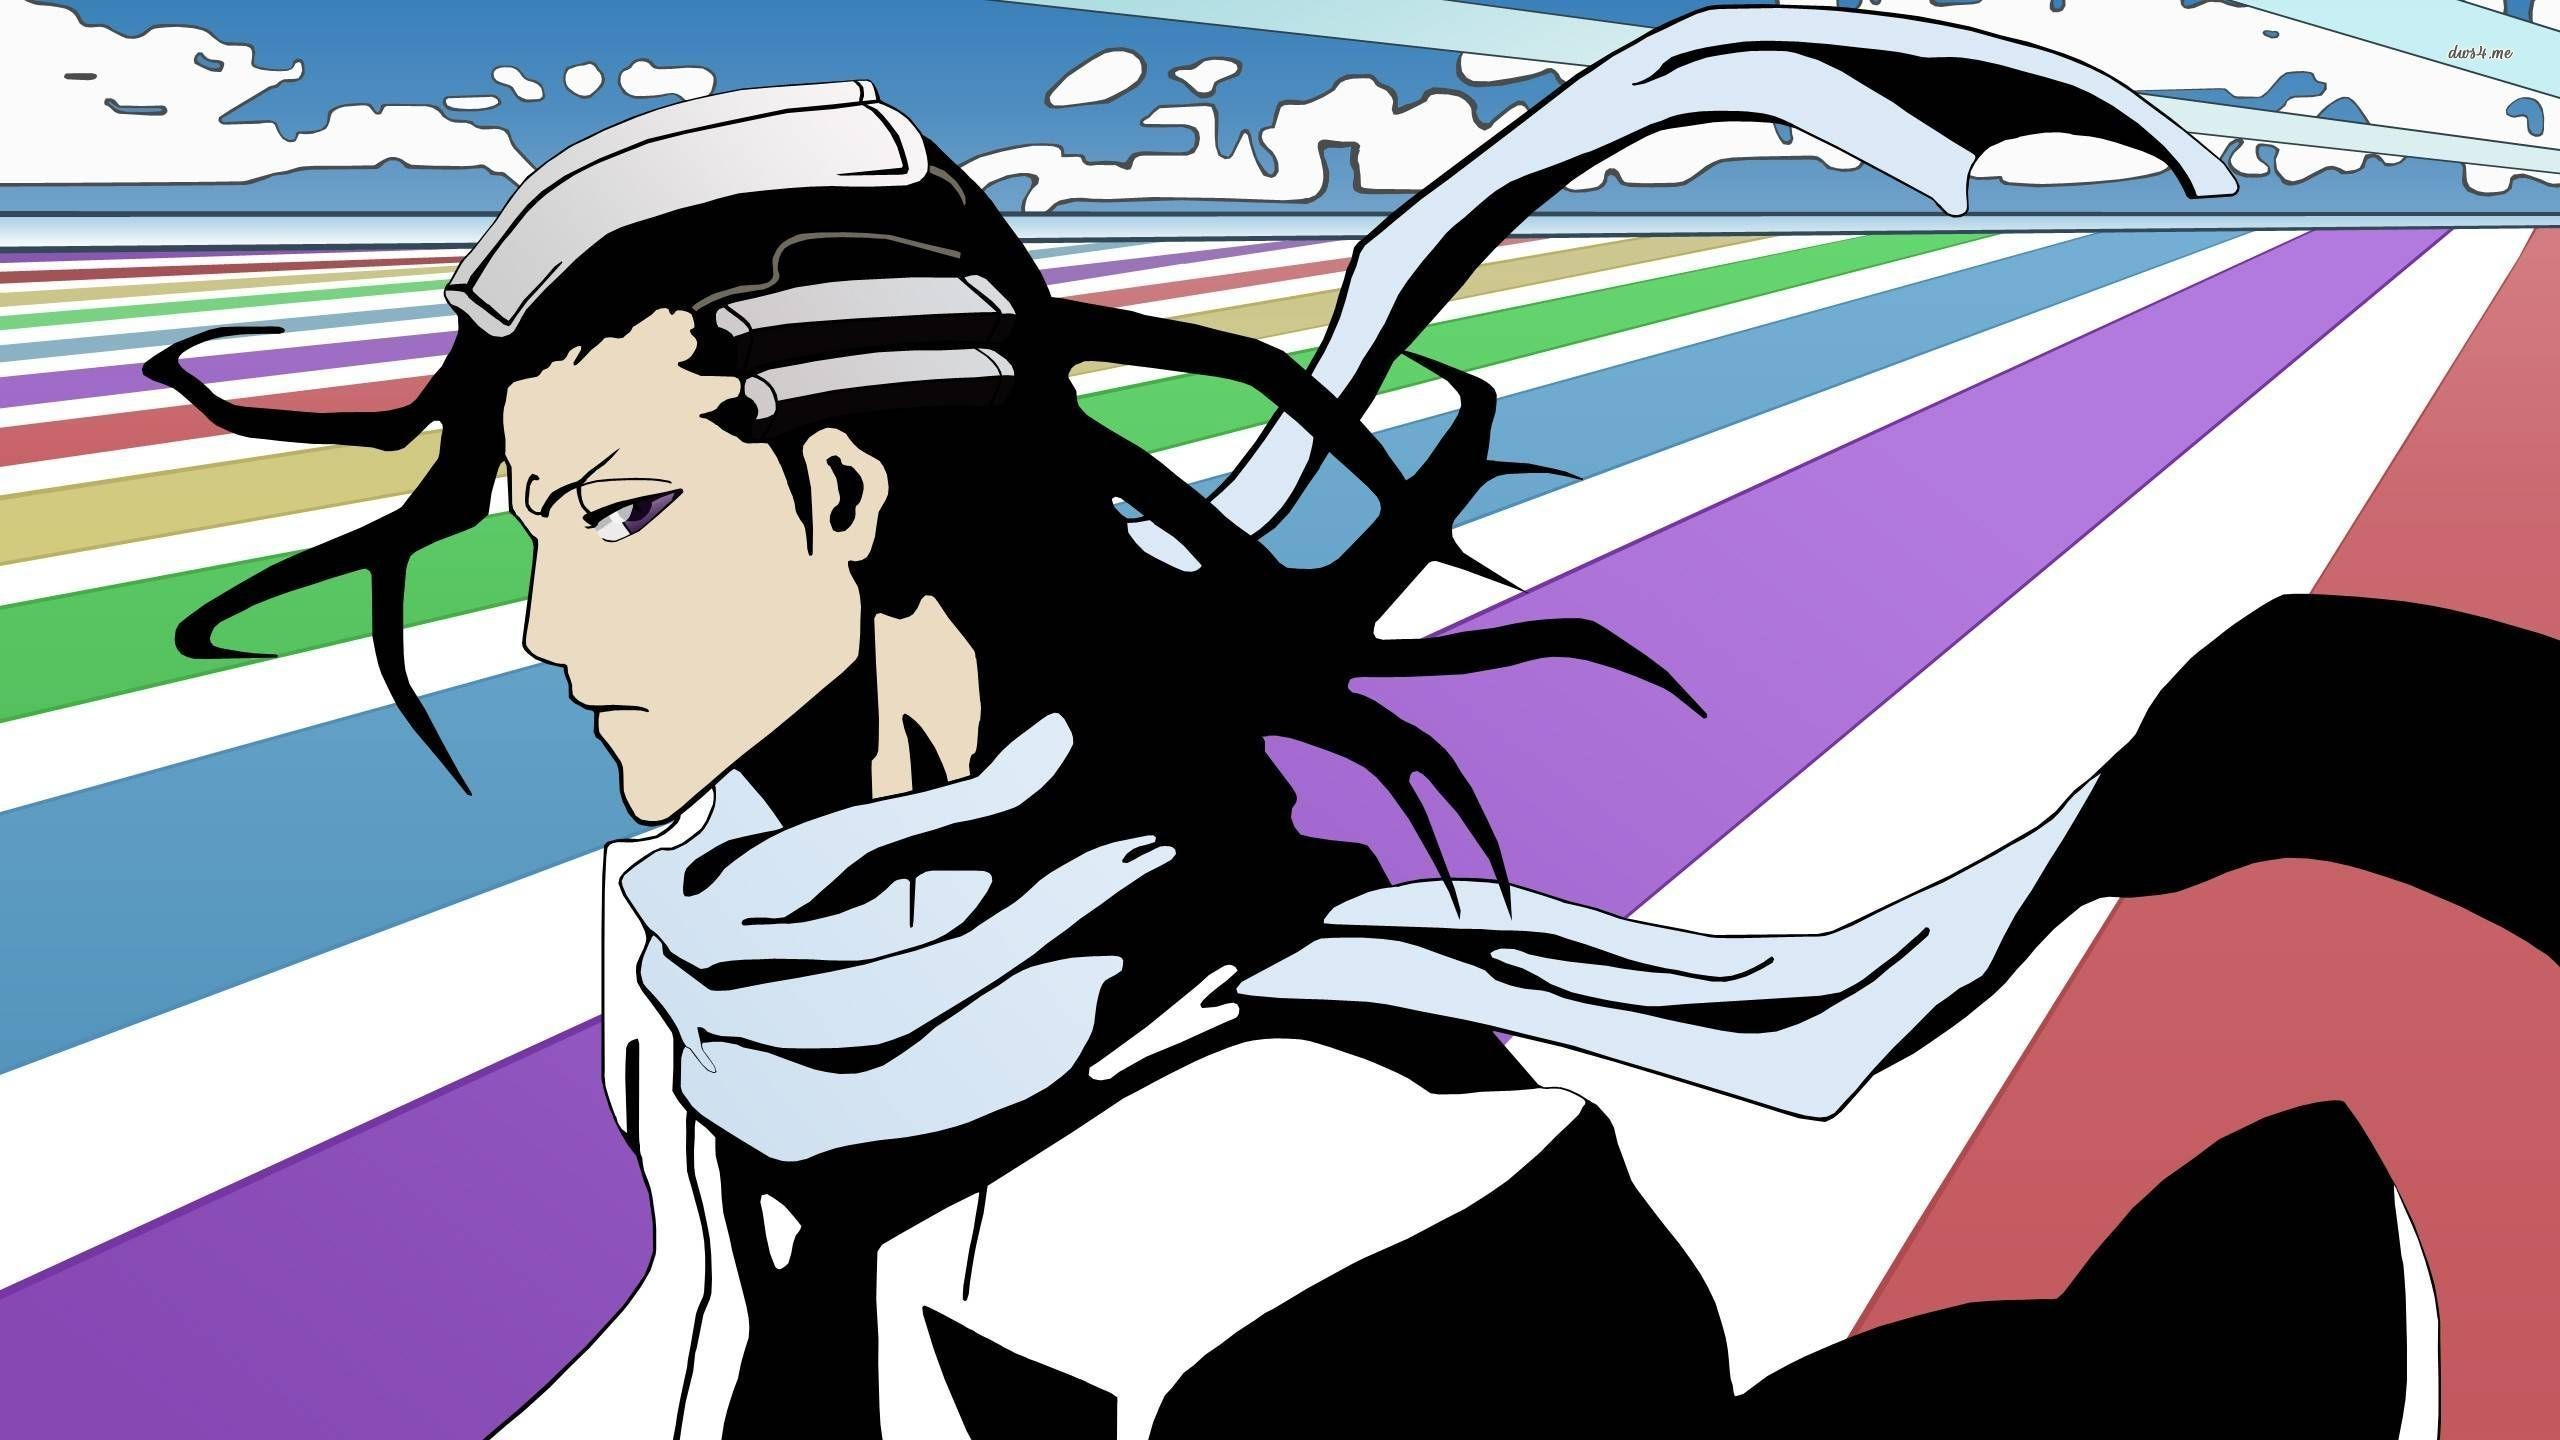 Res: 2560x1440, ... Byakuya Kuchiki - Bleach wallpaper  ...